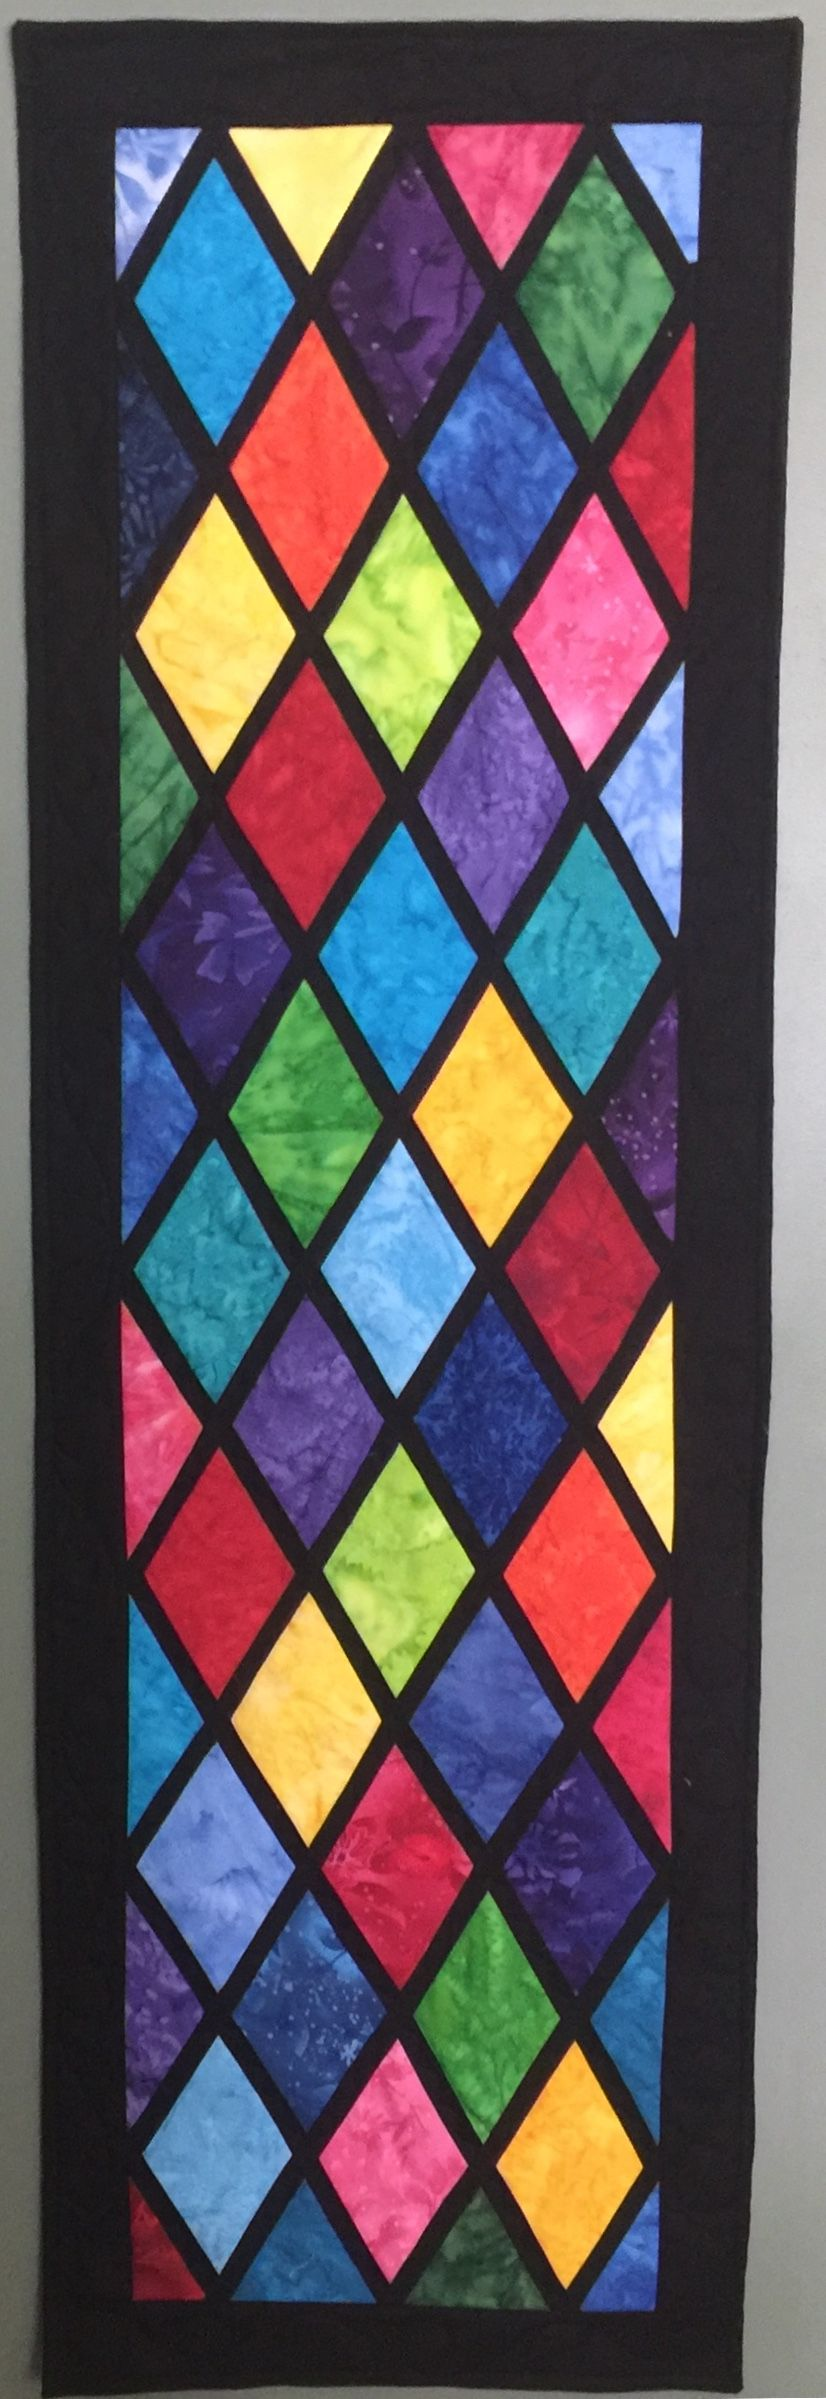 Stained Glass Quilted Wall Hanging For Door 16X48